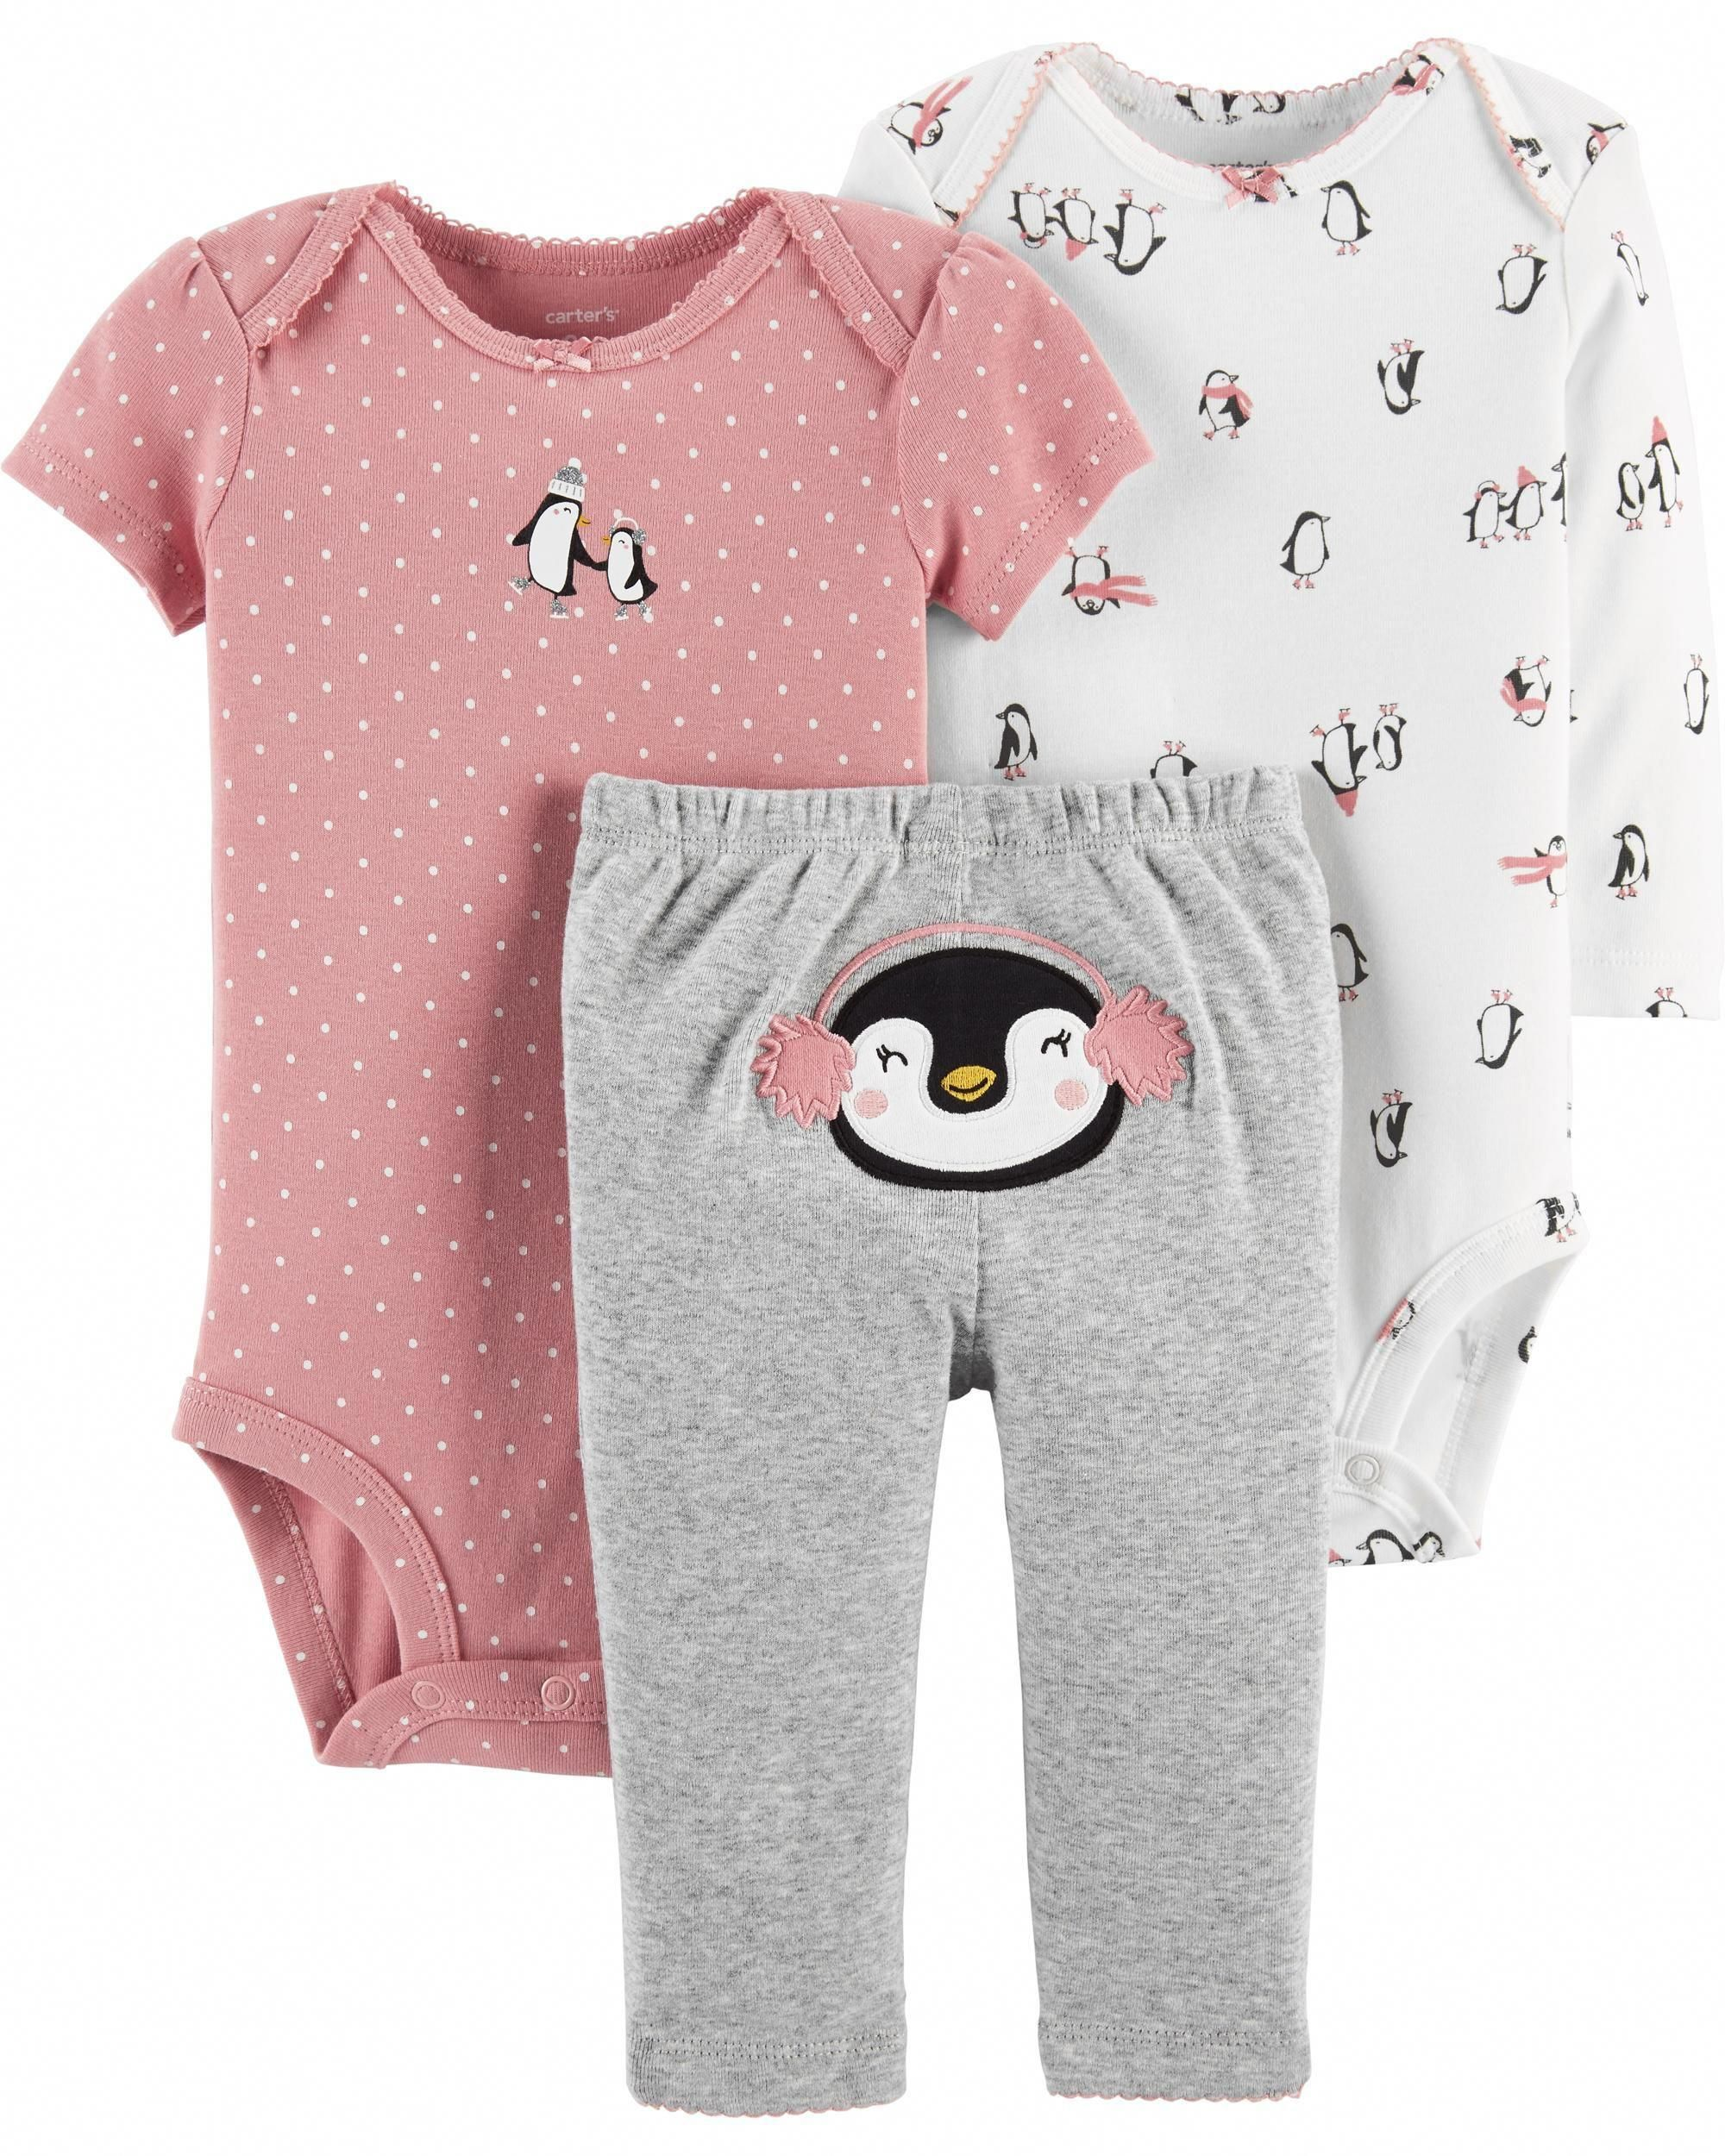 NEW 2pc CARTERS Awesome Girl OUTFIT Shirt /& Striped Capri Leggings 18 24 mo NWT